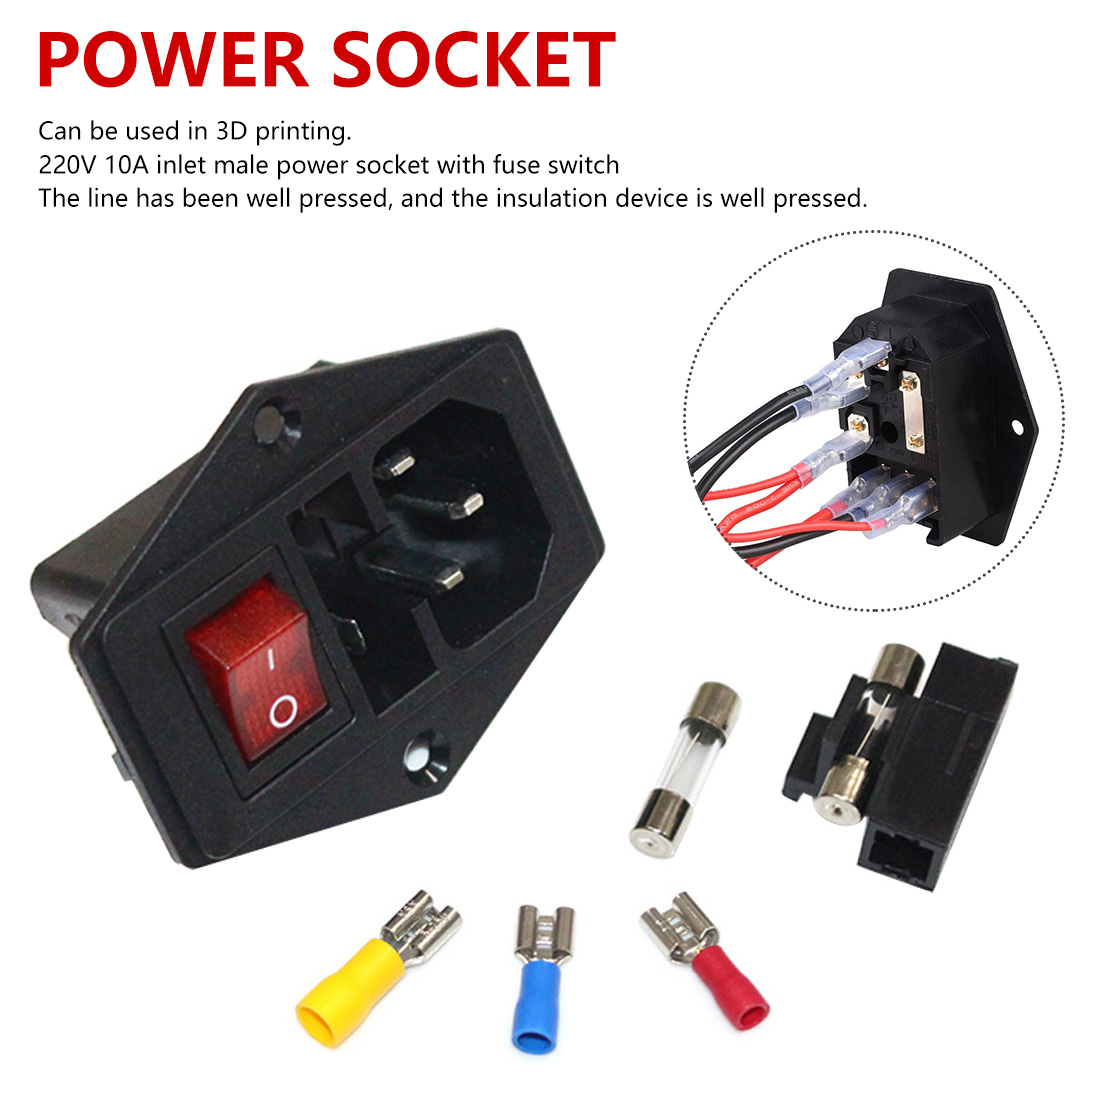 Power Switch <font><b>220V</b></font> <font><b>10A</b></font> power socket with triple Rocker Switch tripod feet of copper with <font><b>fuse</b></font> for 3d printer Parts socket adapter image